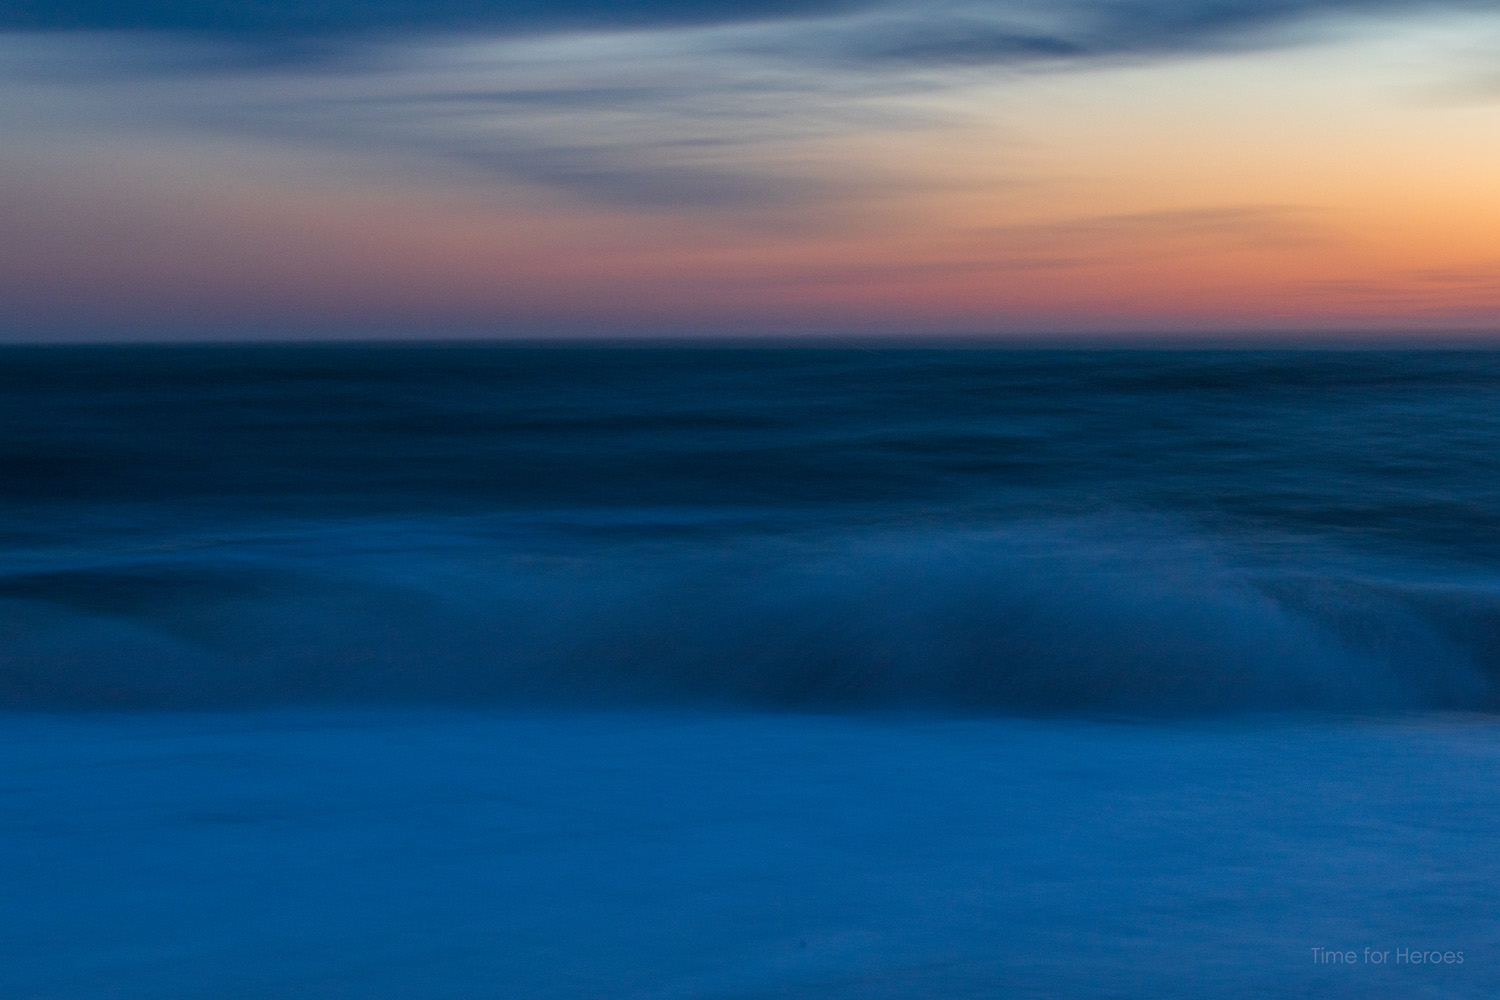 ICM 4 Saharan Seafront sunset 3 - Brighton - Ashley Laurence - Time for Heroes Photography